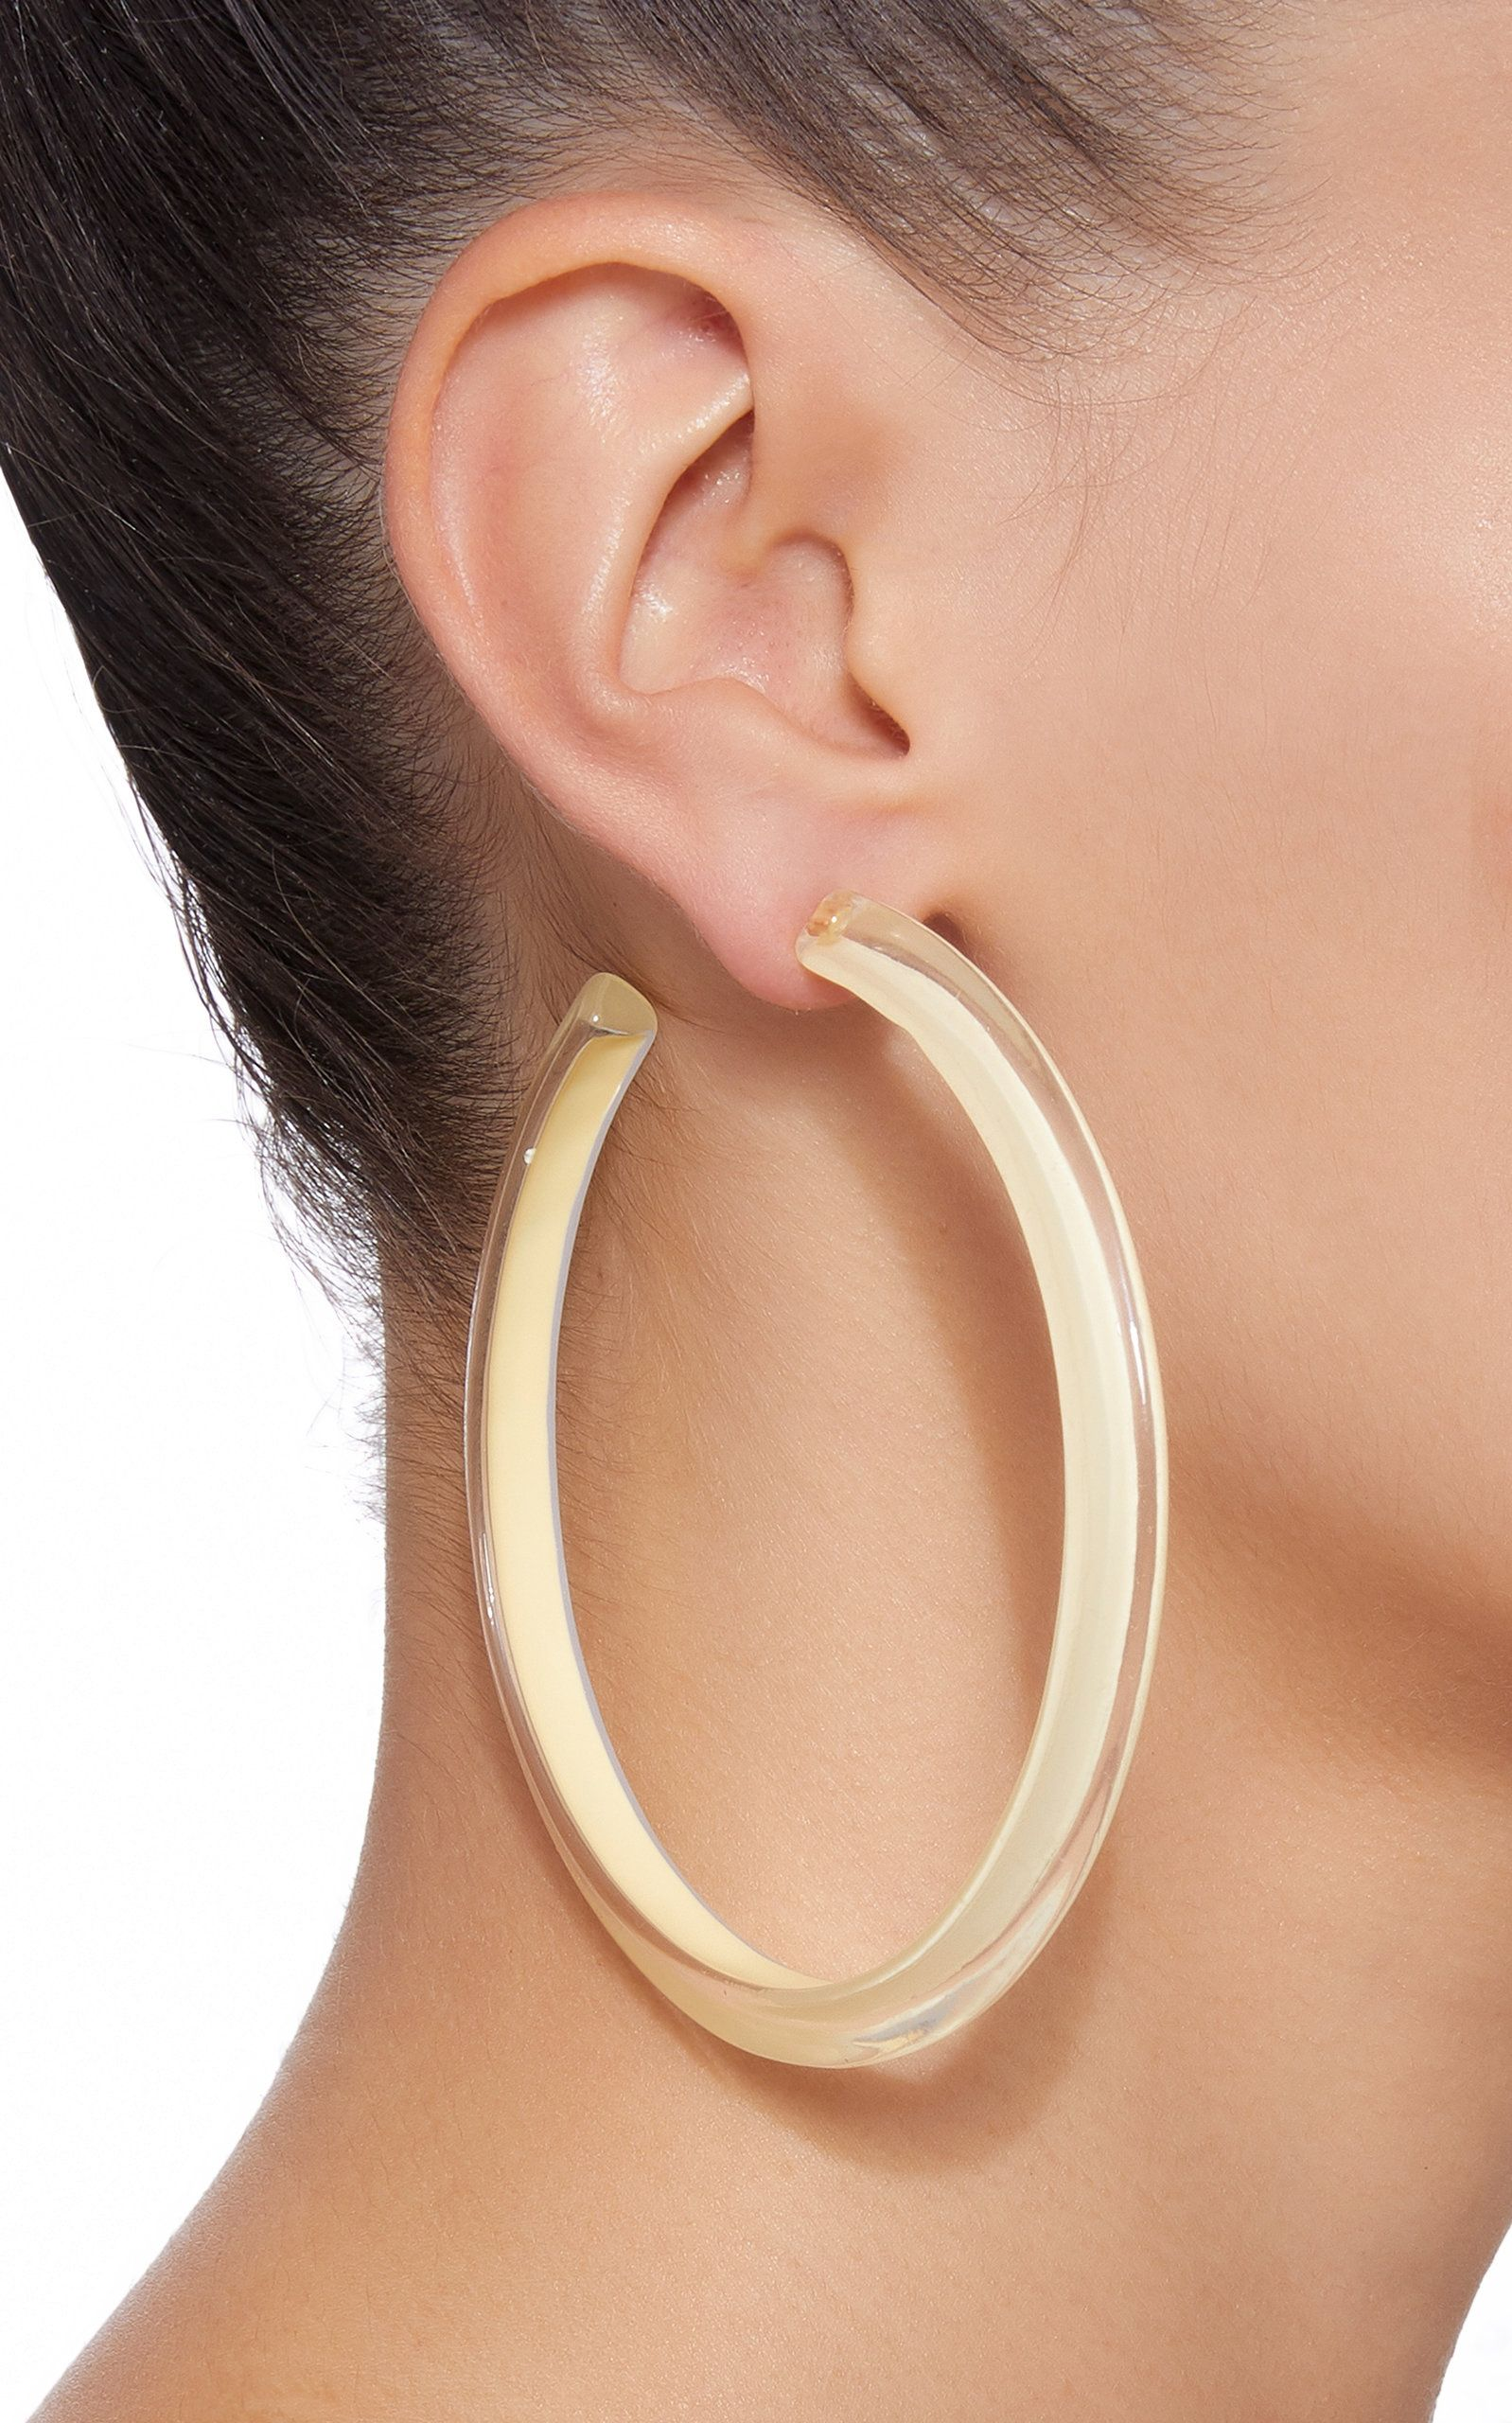 7b84150f32563 Alison Lou Large Jelly Lucite Hoop Earrings   Products in 2019 ...